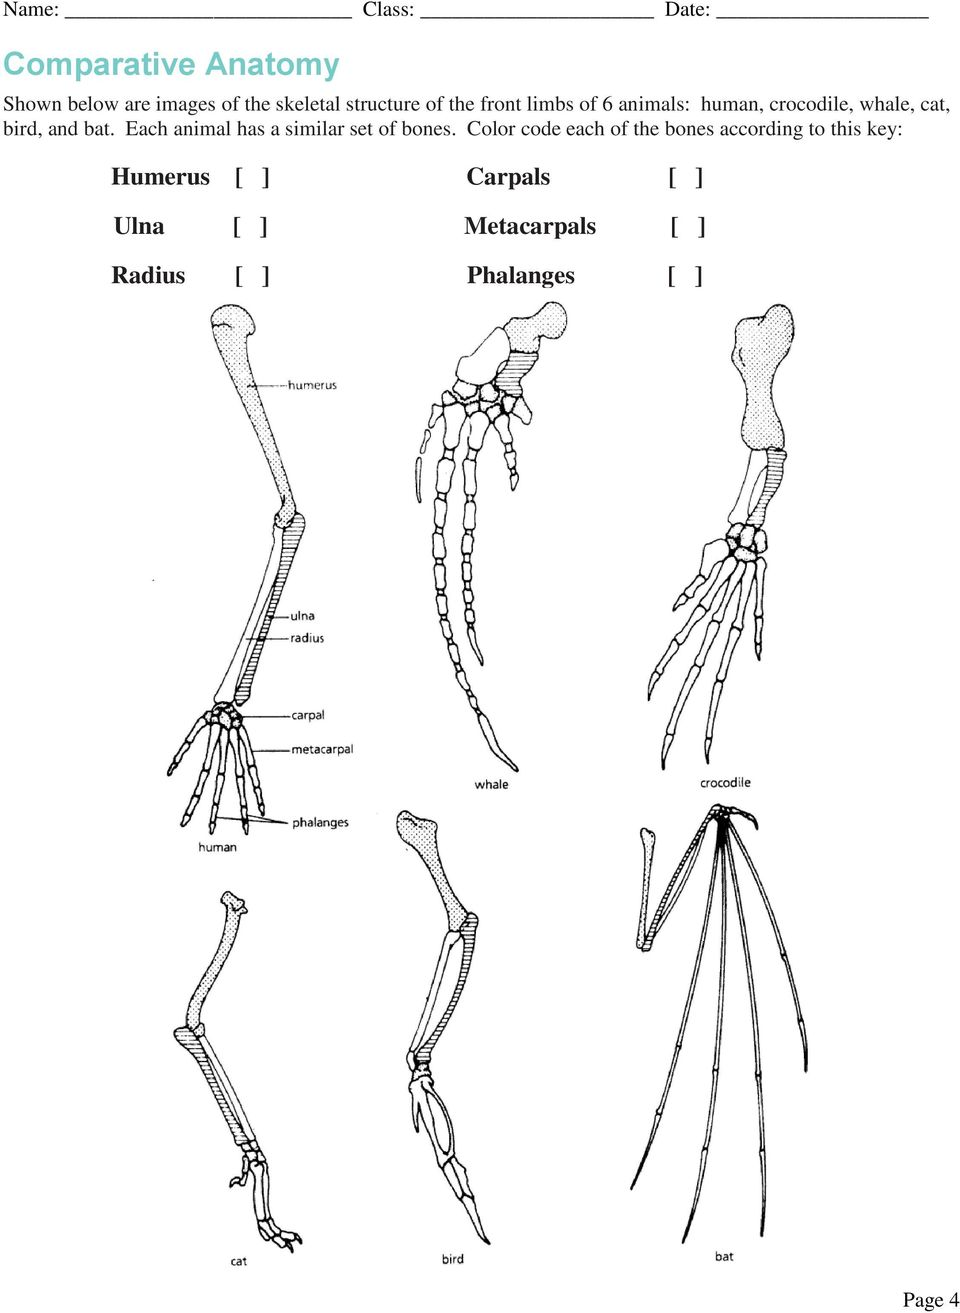 Each animal has a similar set of bones.